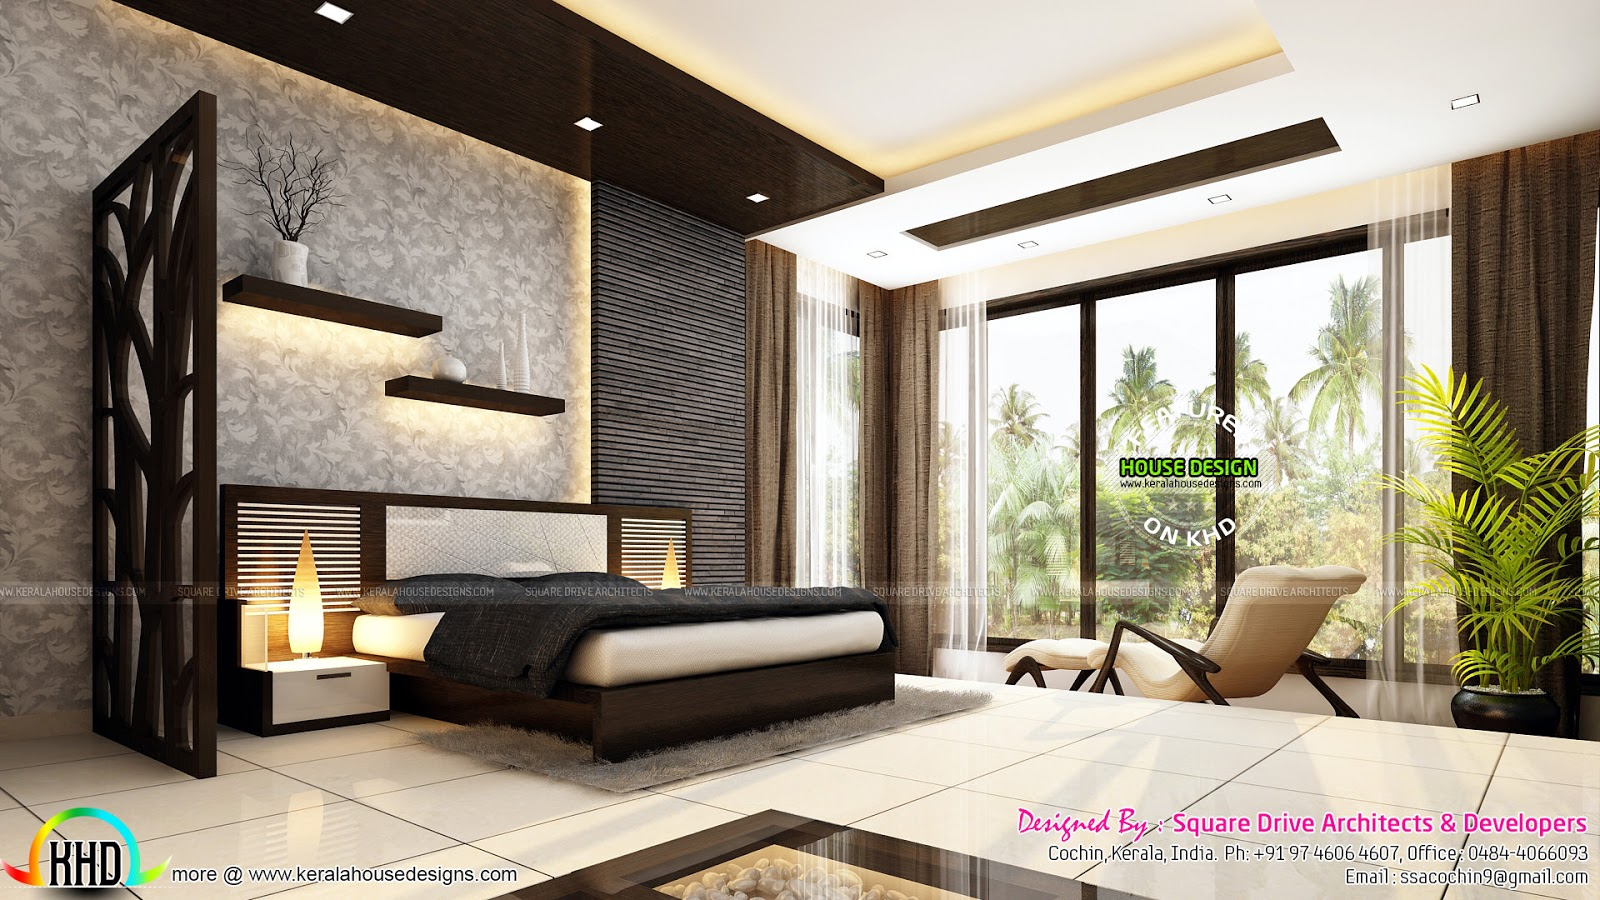 Very beautiful modern interior designs kerala home Beautiful interior home designs